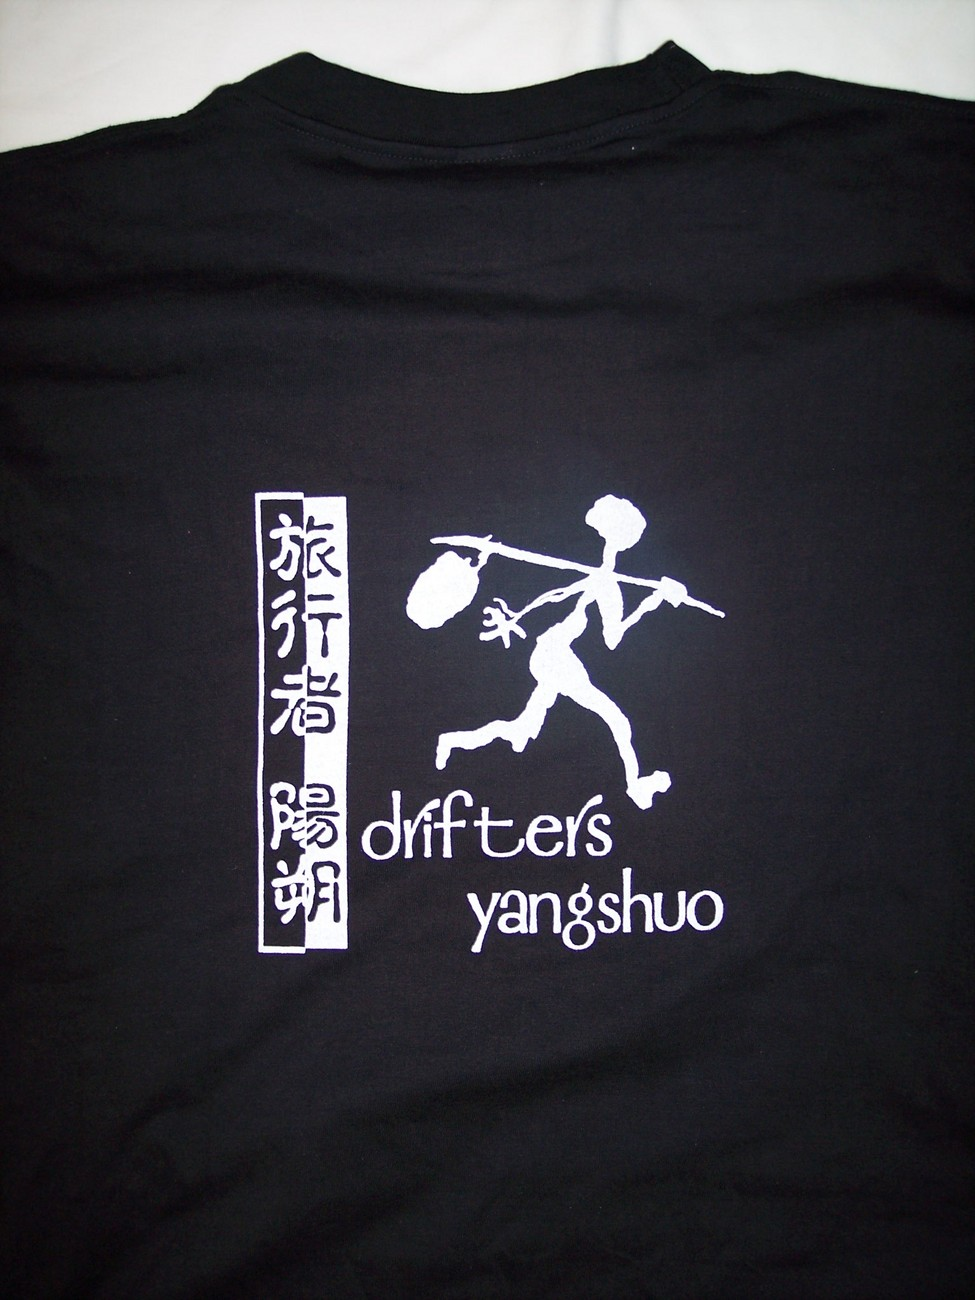 Drifters Cafe Black T-Shirt Yangshou, China  Small  S